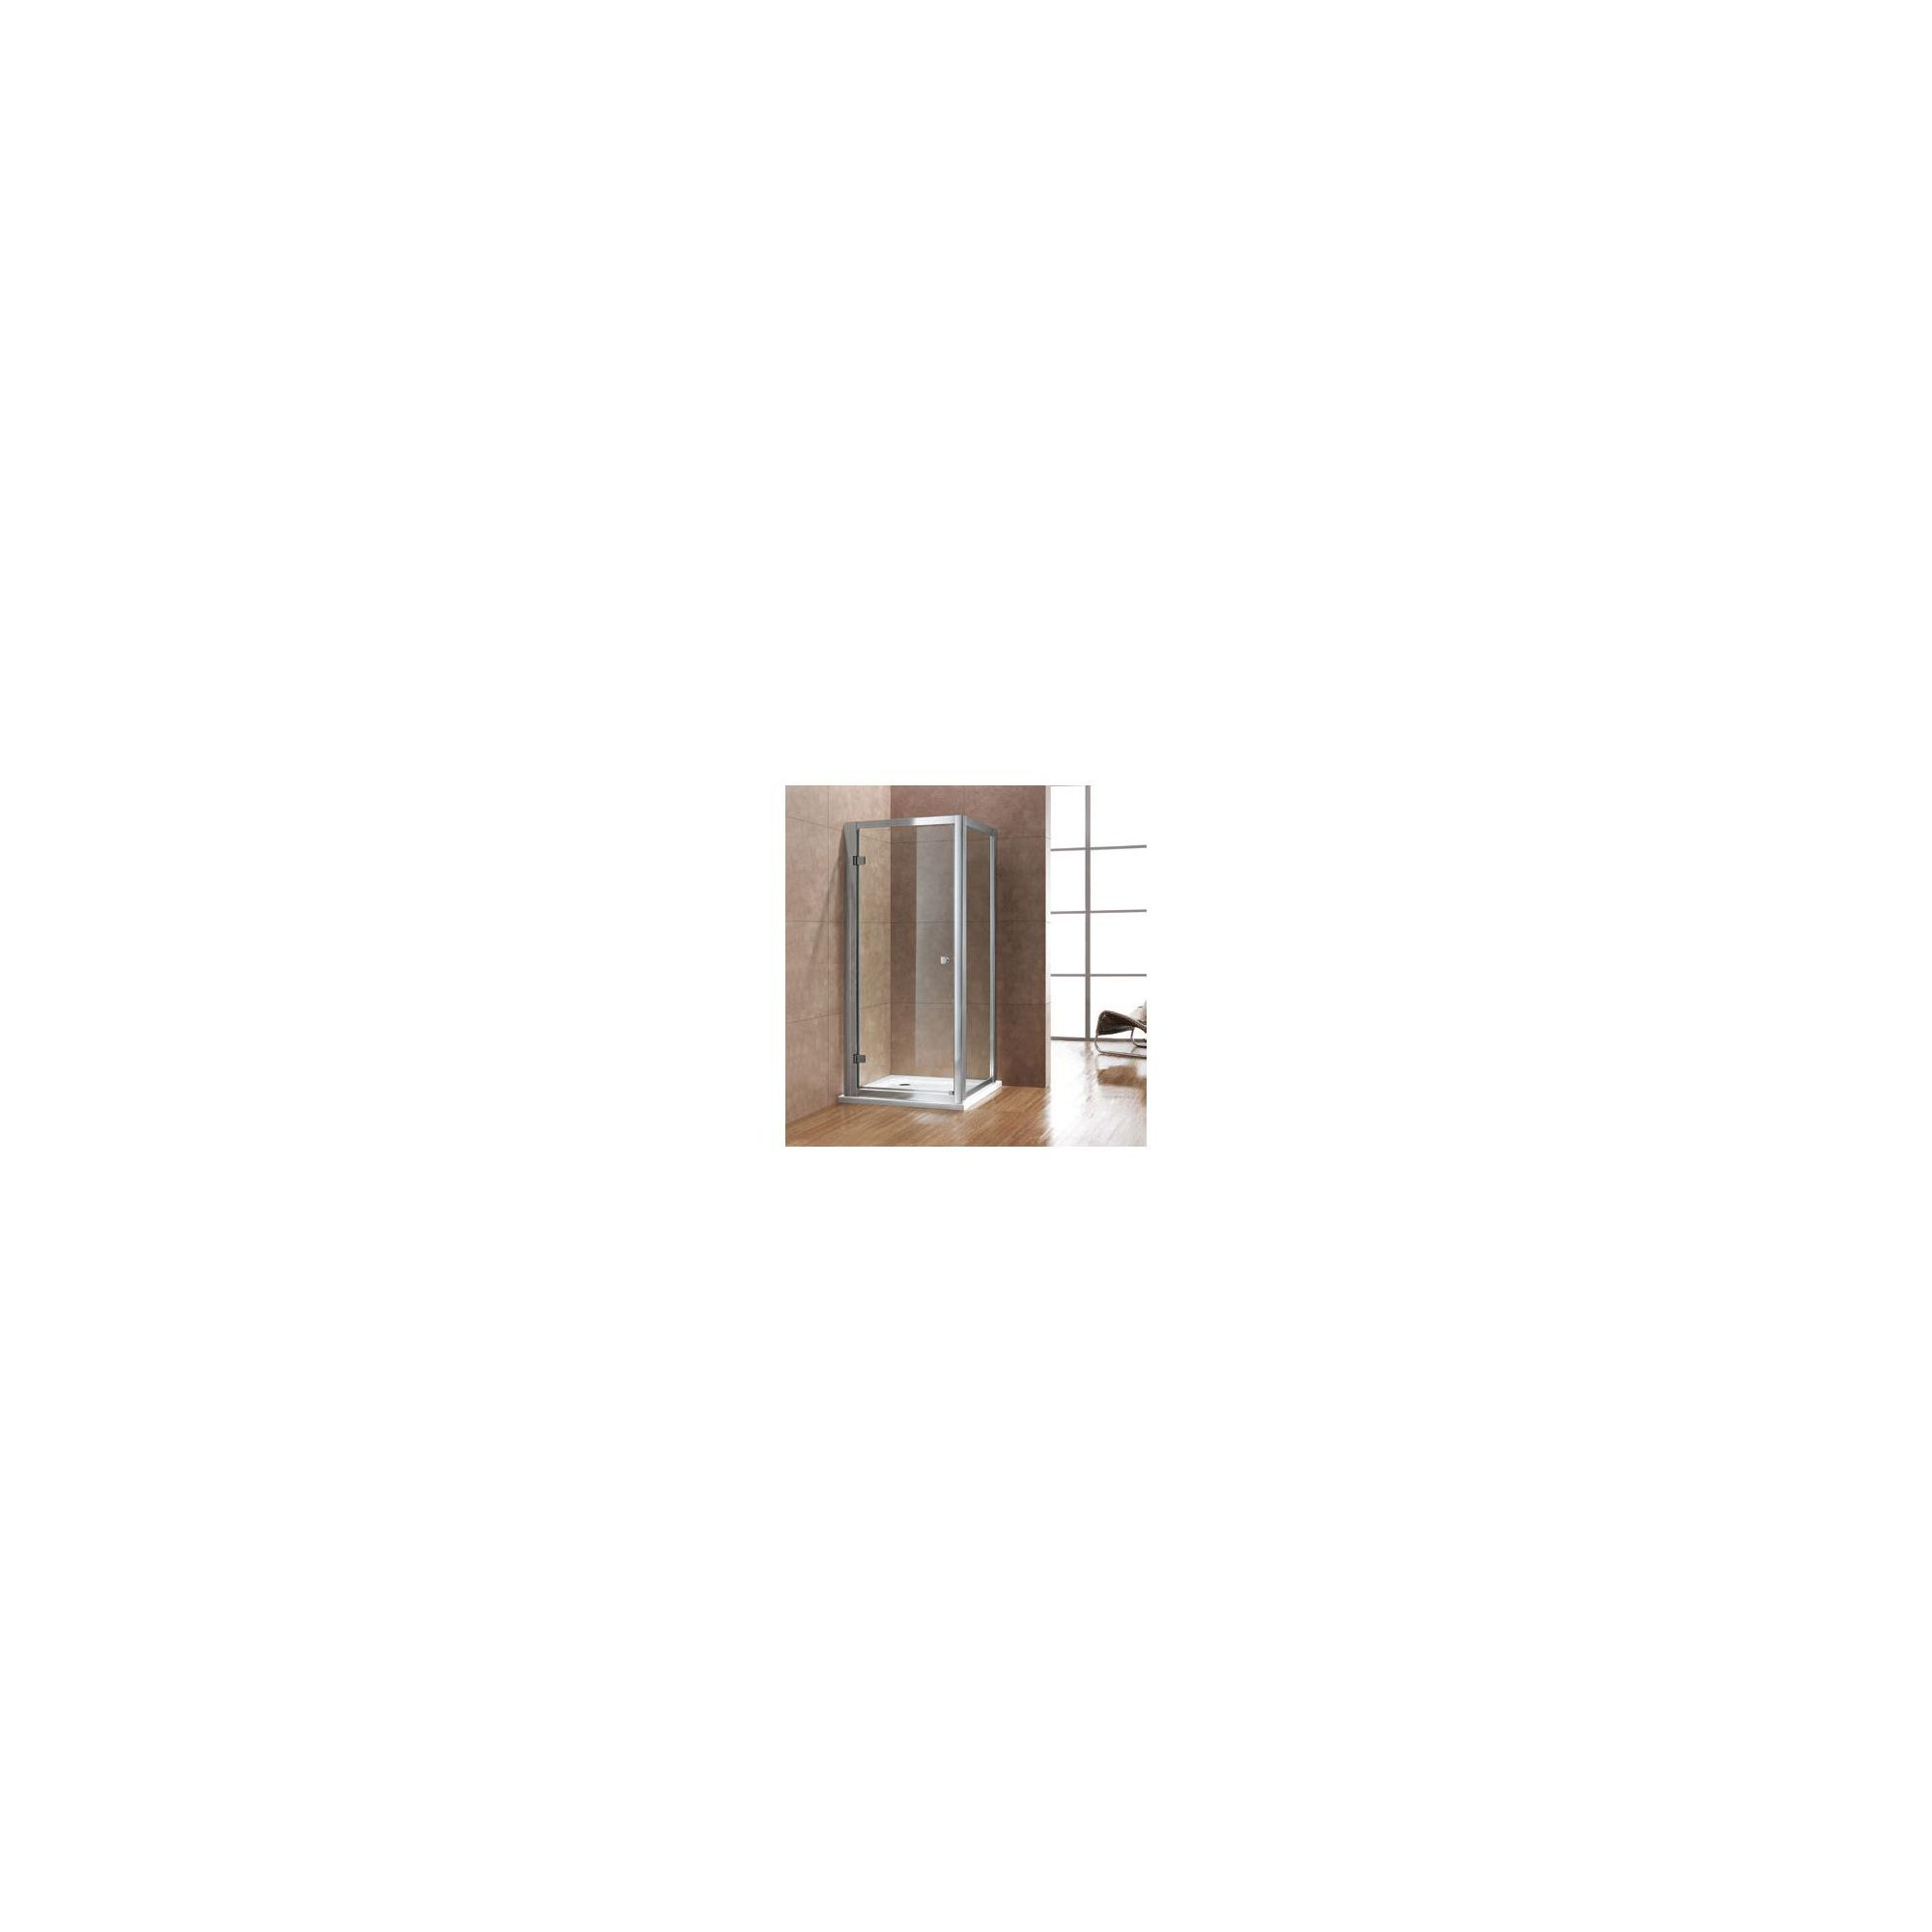 Duchy Premium Hinged Door Shower Enclosure, 1000mm x 900mm, 8mm Glass, Low Profile Tray at Tesco Direct